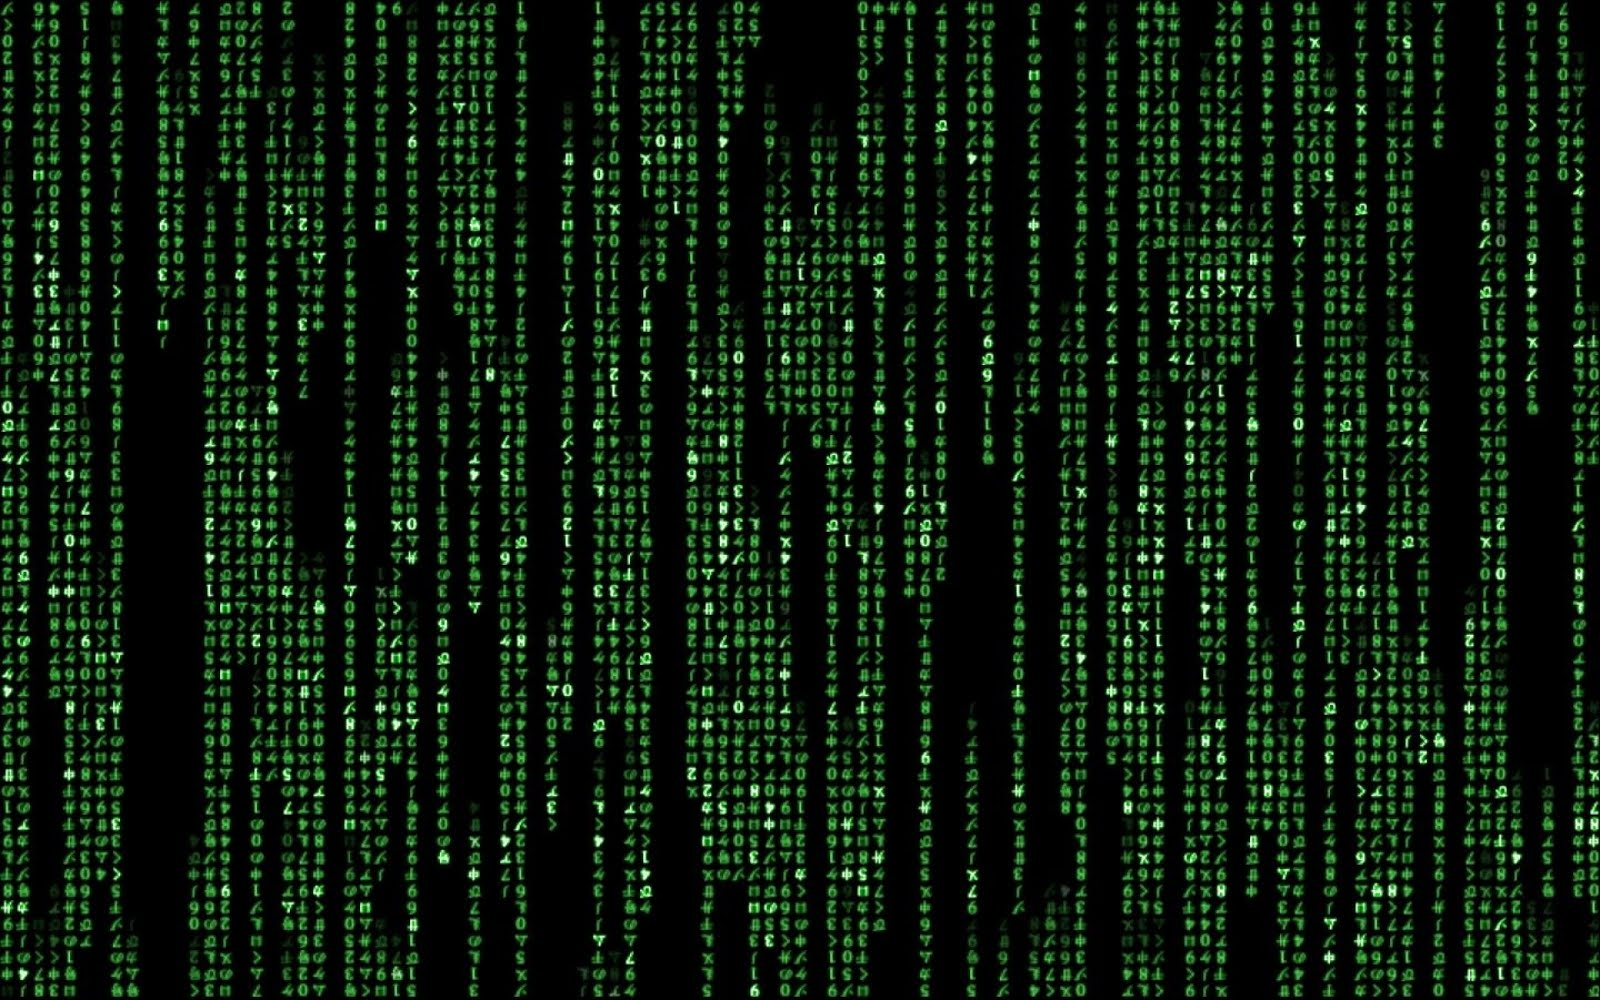 matrix animated wallpaper animated wallpaper windows 7